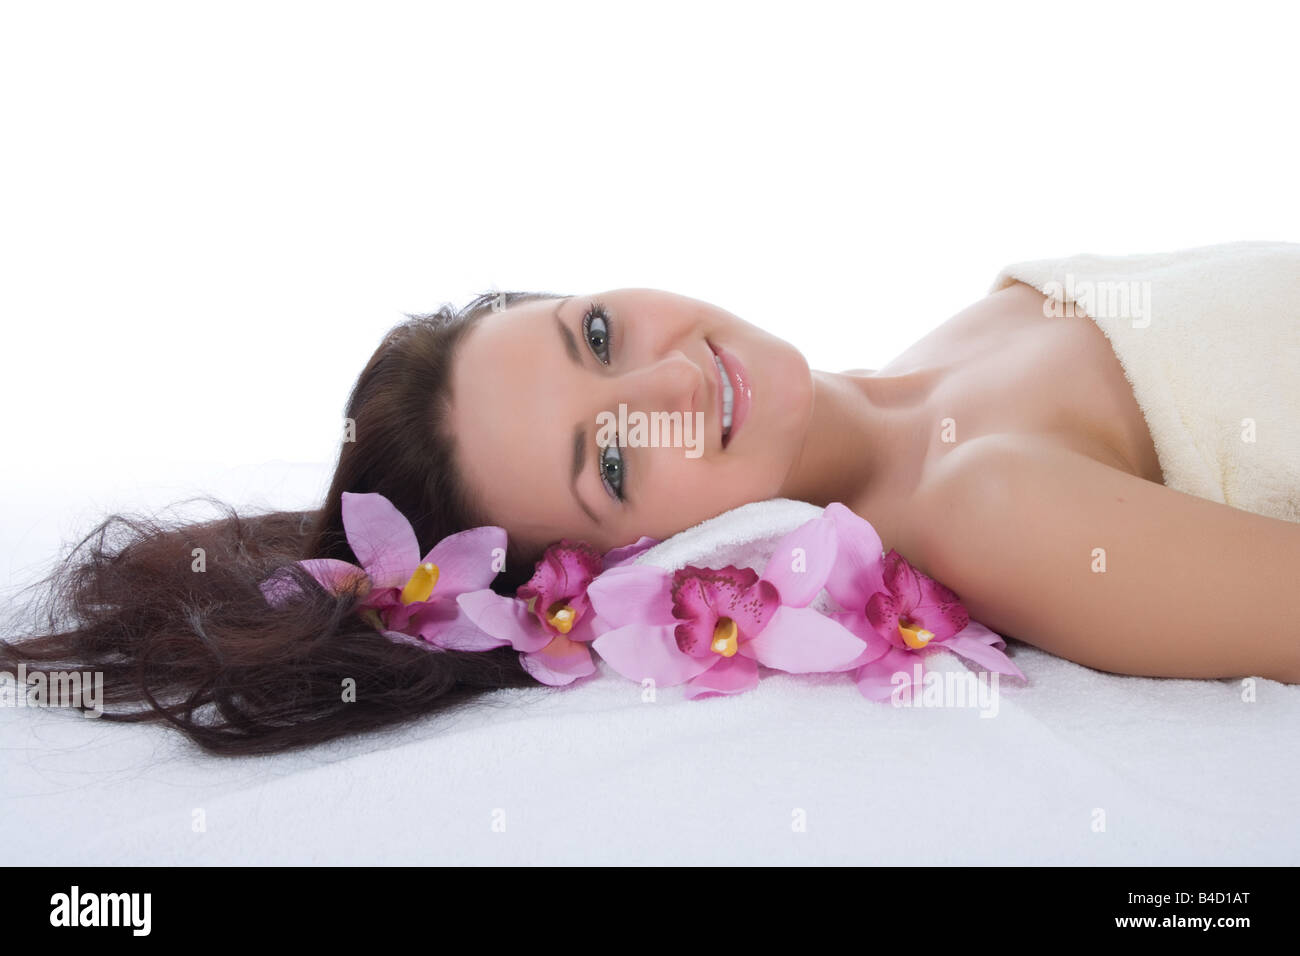 Erotic massage to restore harmony in the family: types and techniques of erotic massage 59